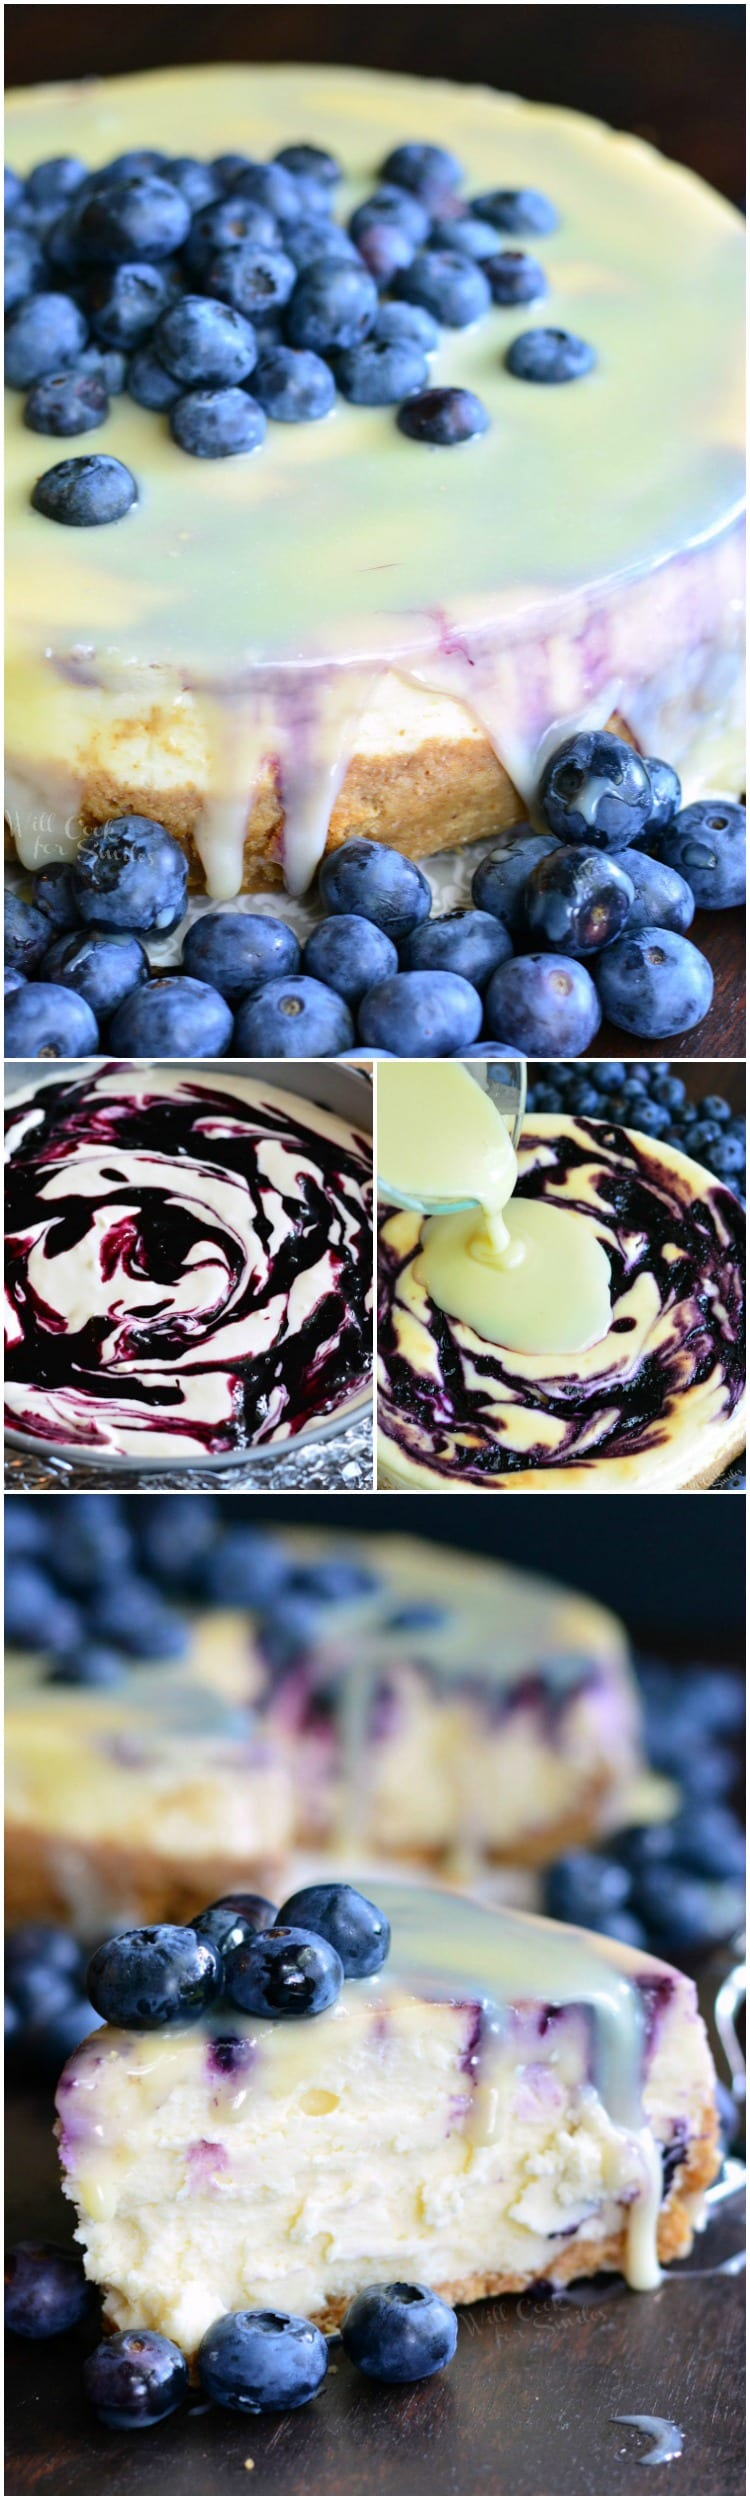 How to make Cheesecake collage 1st photo is White Chocolate Blueberry Cheesecake on a table, 2nd photo is pouring the white chocolate over cheesecake, 3rd photo is a slice of blueberry cheesecake